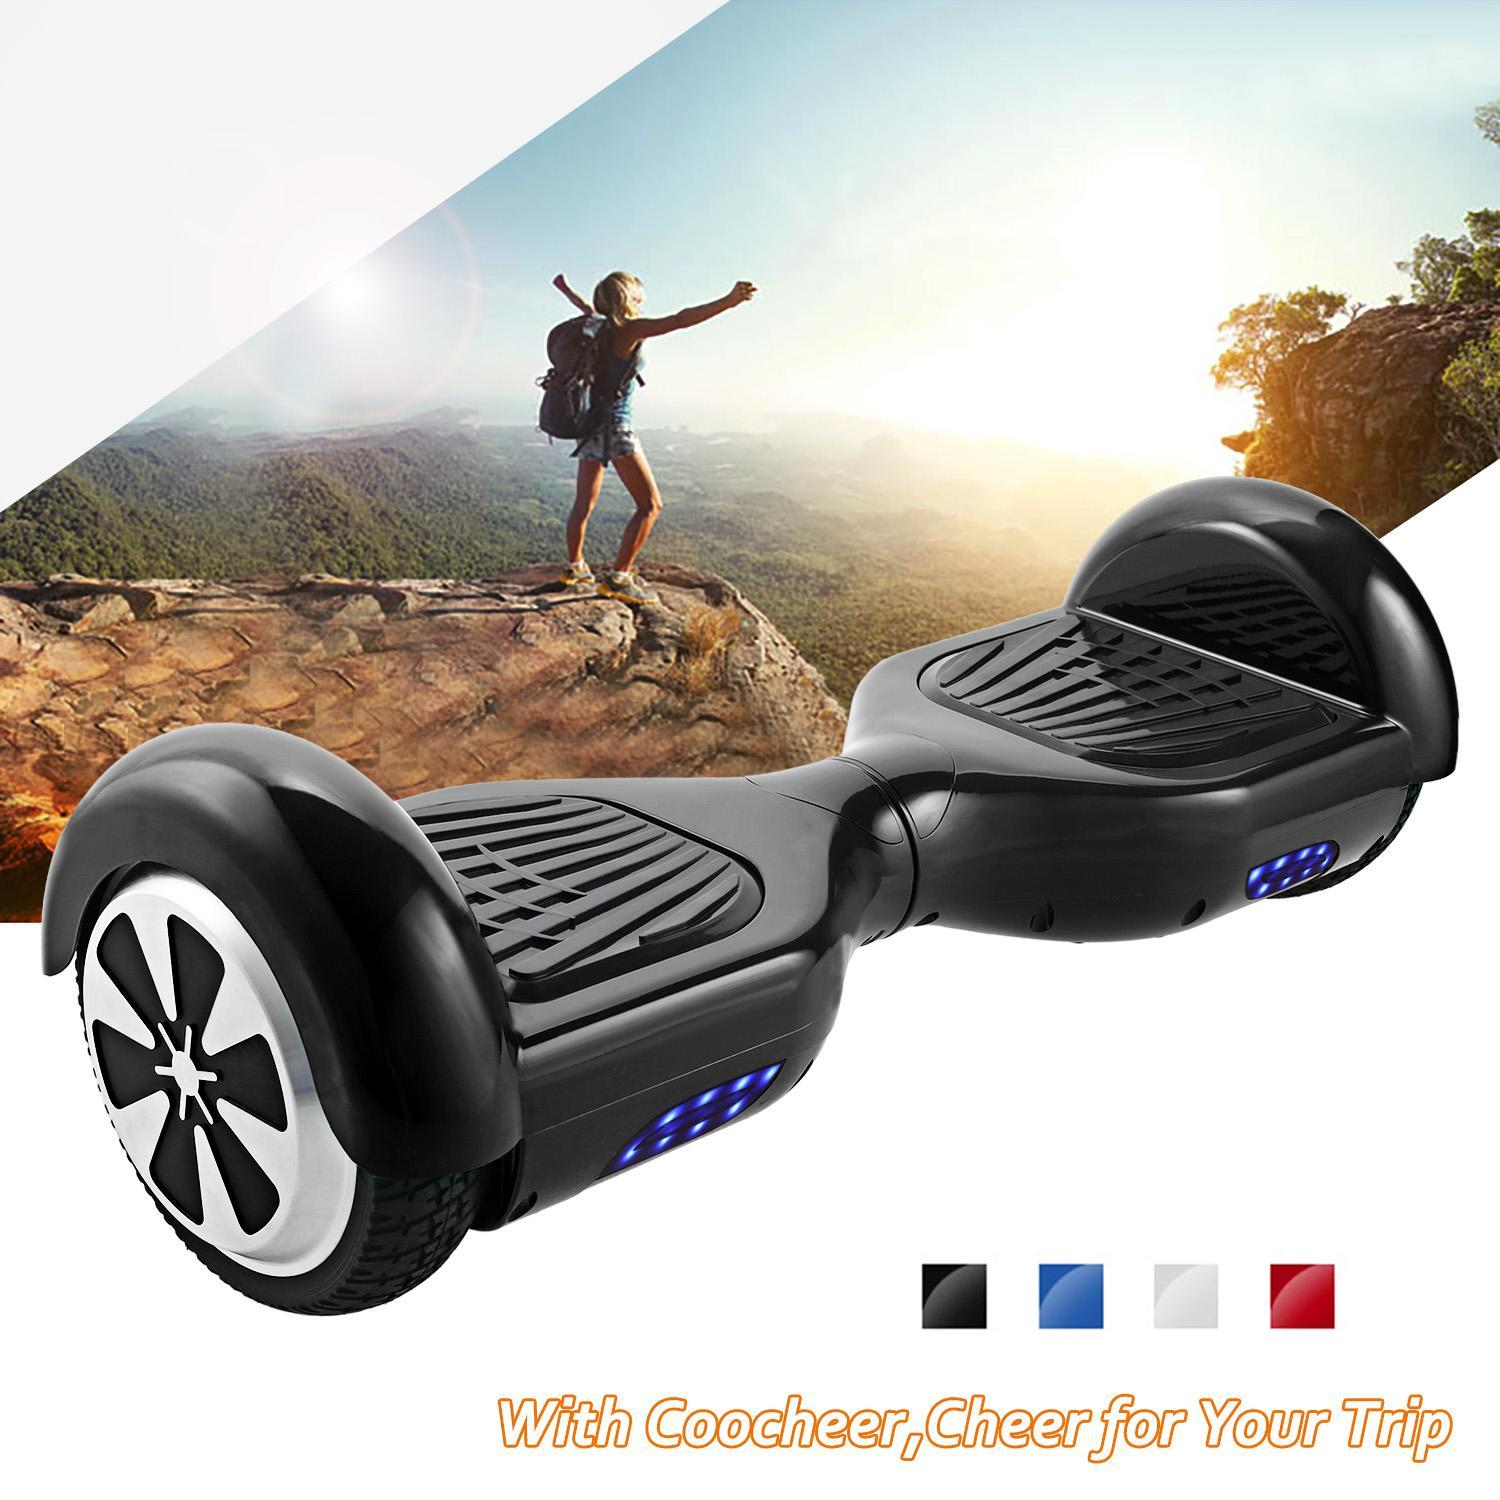 Self Balance Scooter Motorized 2 Wheel Self Hover Balance Board All-Terrain Tires Personal Hover Transporter... by